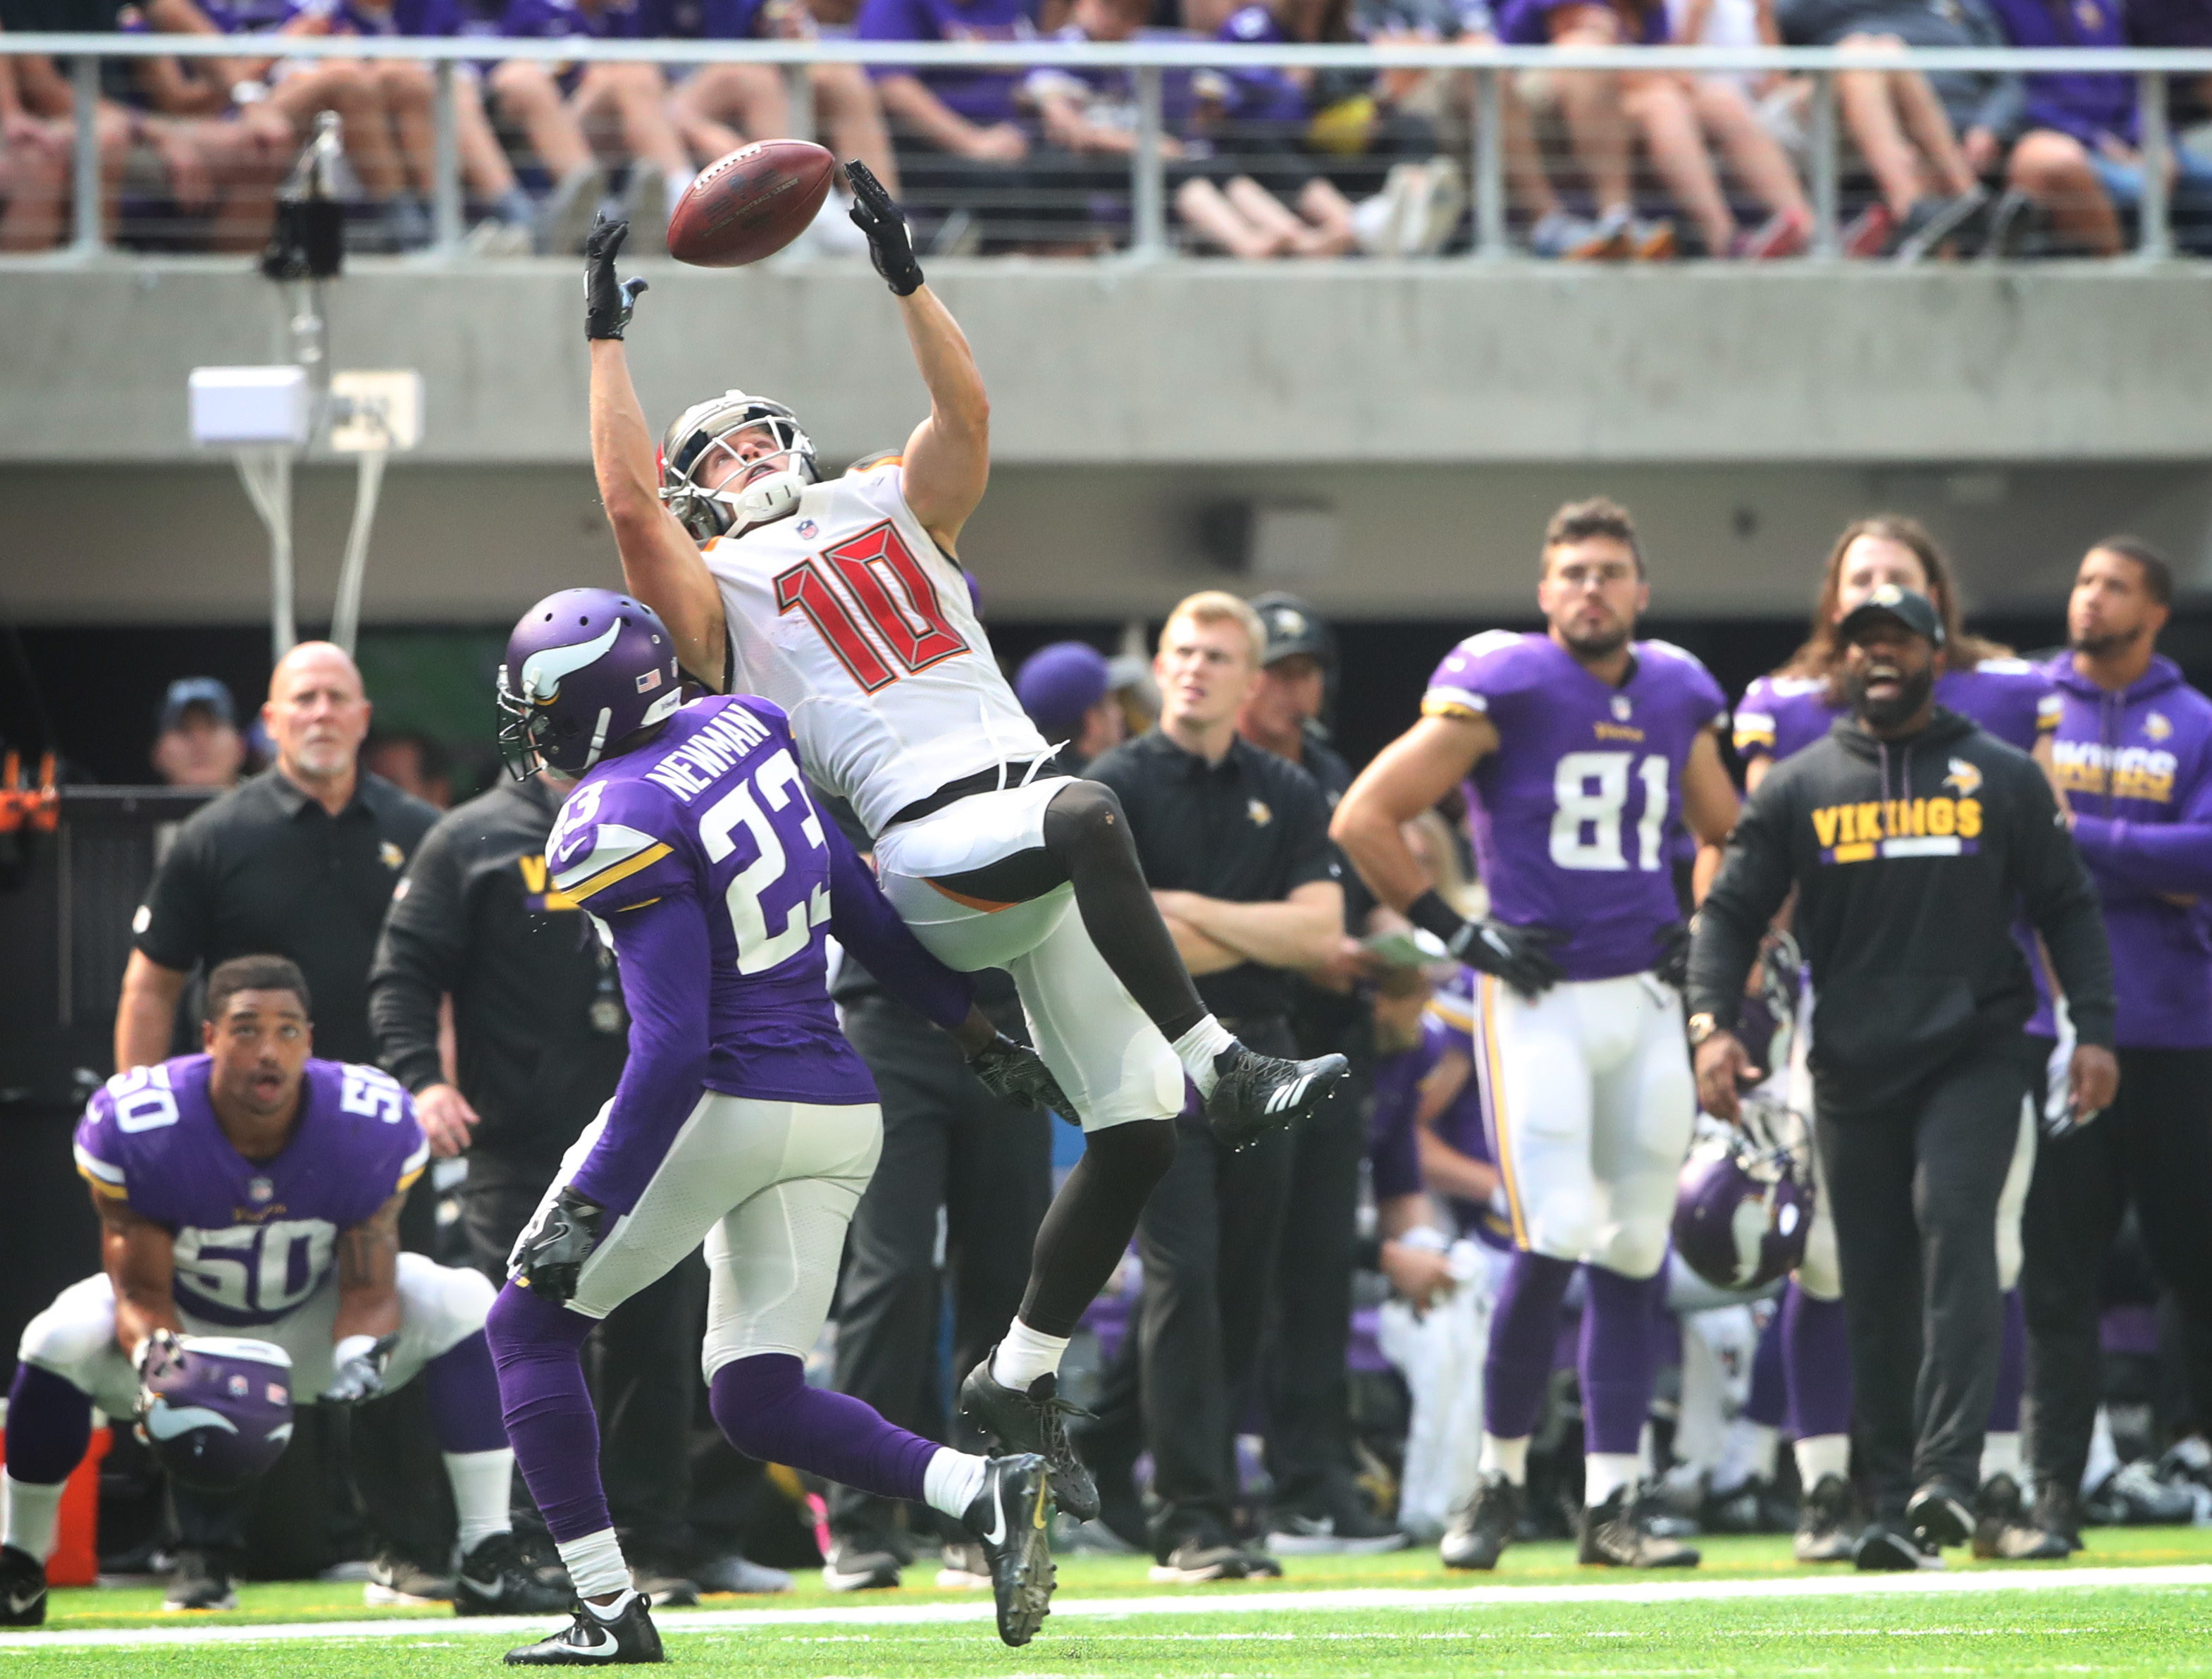 Tampa Bay Buccaneers wide receiver Adam Humphries (10) caught a first down catch over Minnesota Vikings cornerback Terence Newman (23) in the firth quarter at U.S. Bank Stadium Sunday September 24,2017 in Minneapolis ,MN. ] JERRY HOLT • jerry.holt@st